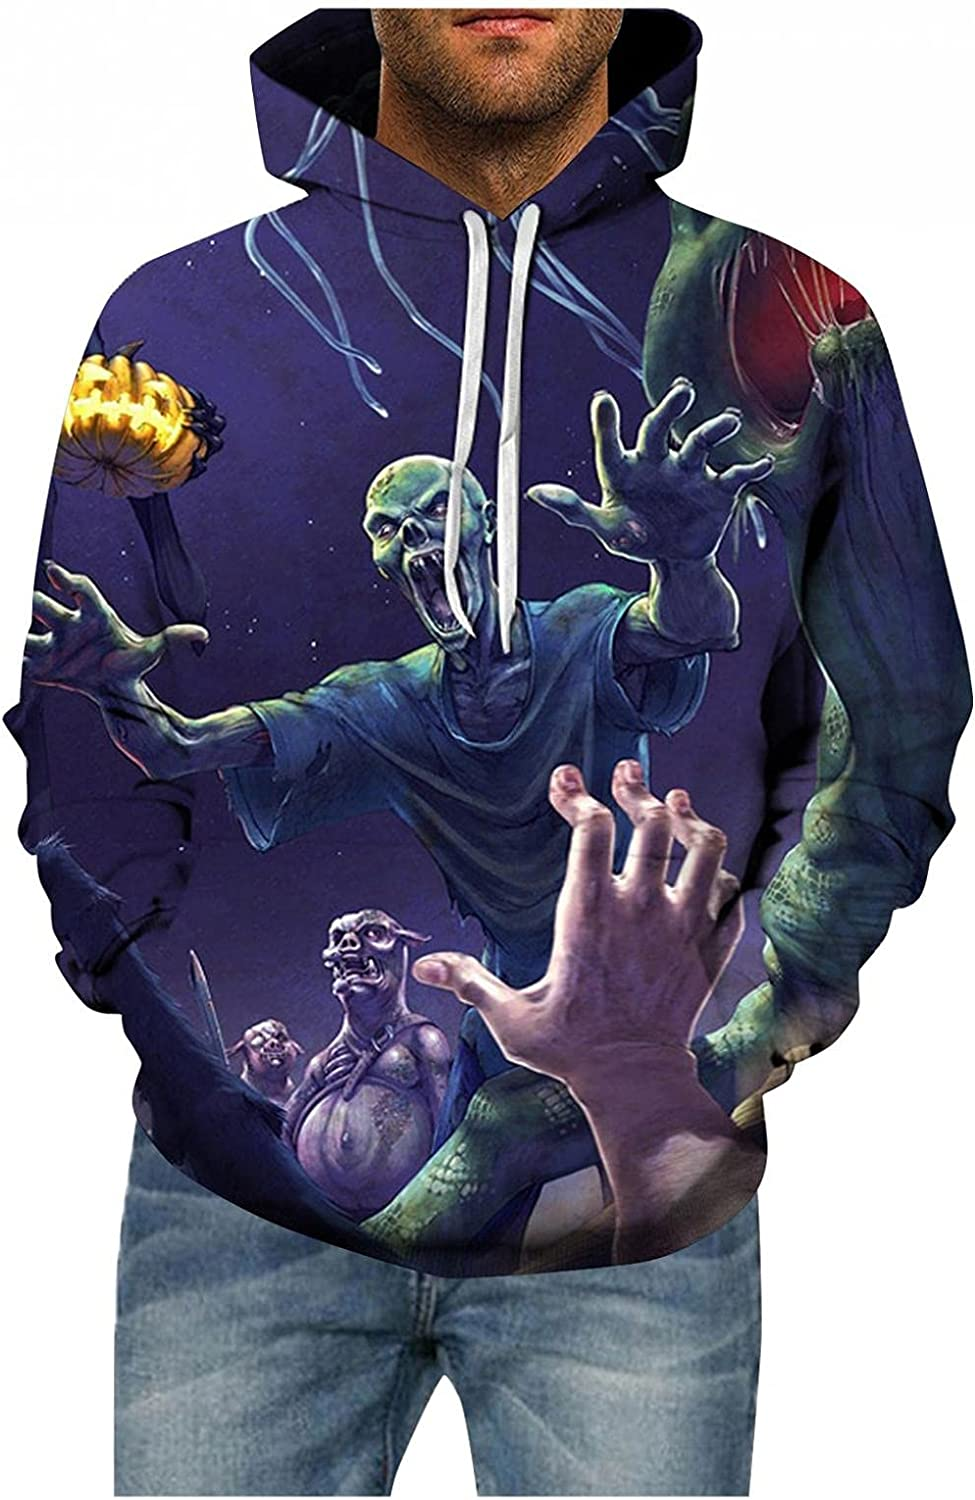 XUNFUN Skeleton Hoodies for Men Plus Size Funny Halloween 3D Printed Graphic Sweatshirts Casual Comfy Pullover Tops Blouse